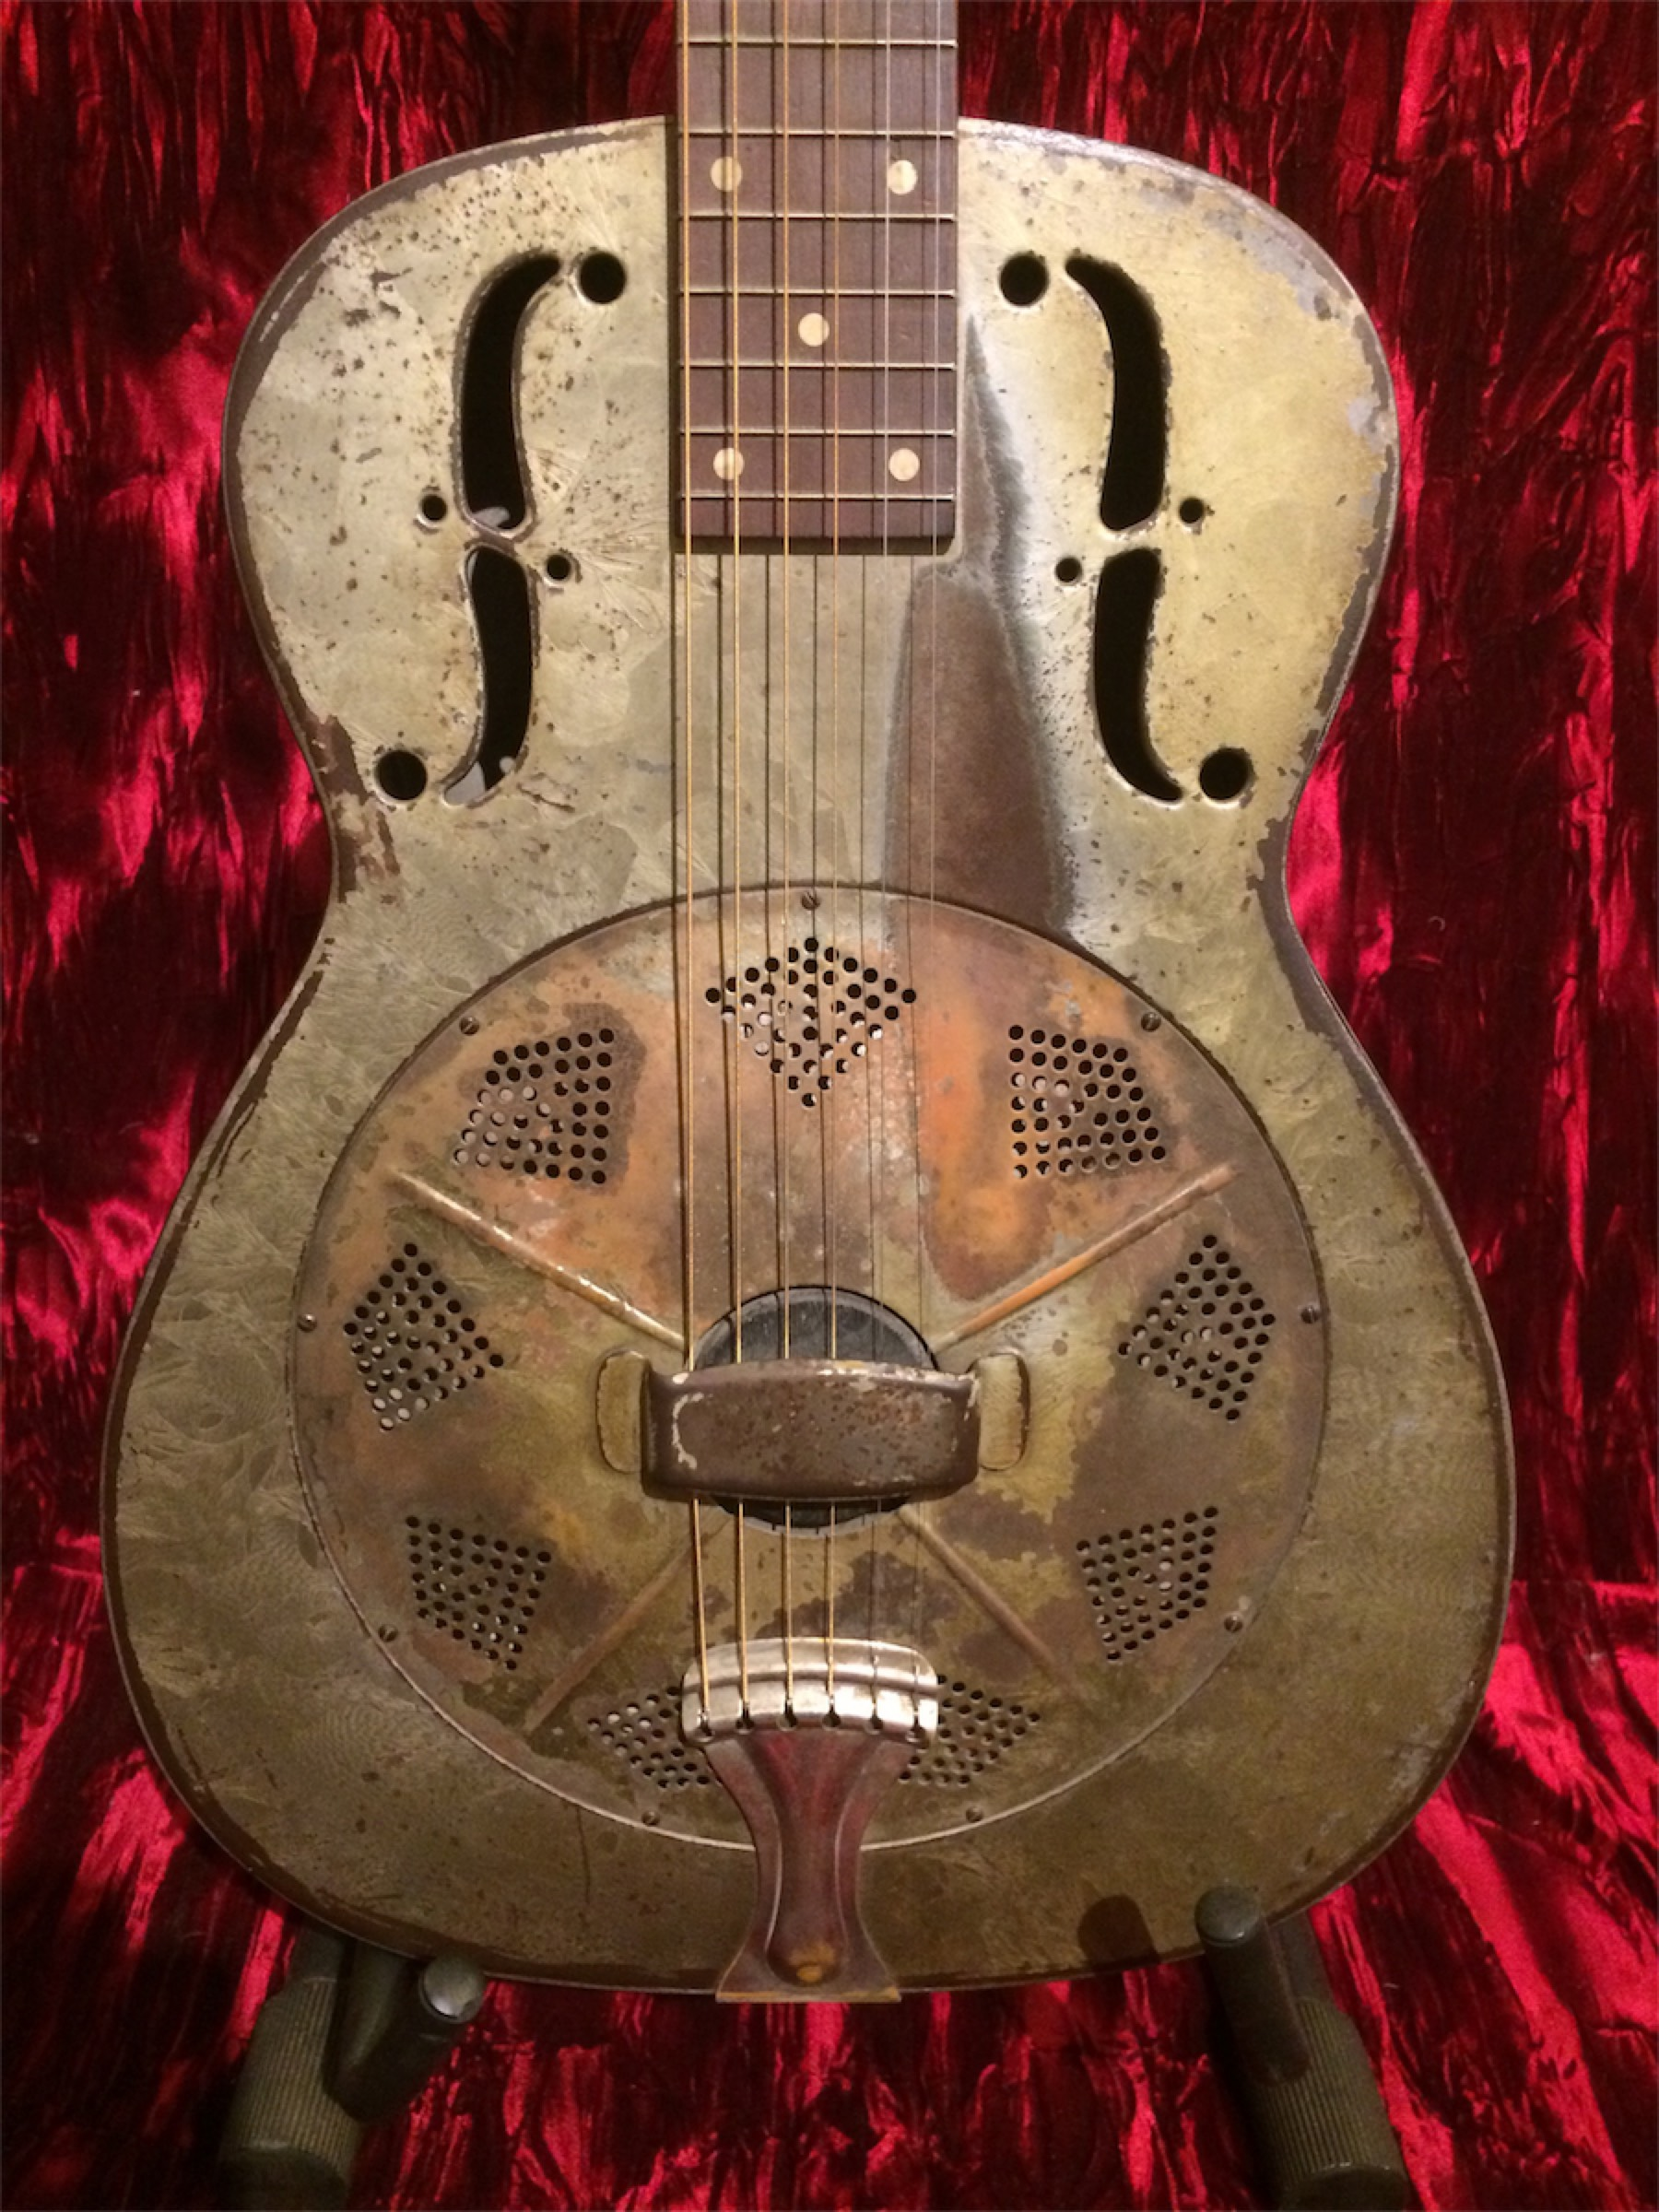 national dobro duolian squareneck 1934 frosted duco guitar for sale guitarsmojo. Black Bedroom Furniture Sets. Home Design Ideas